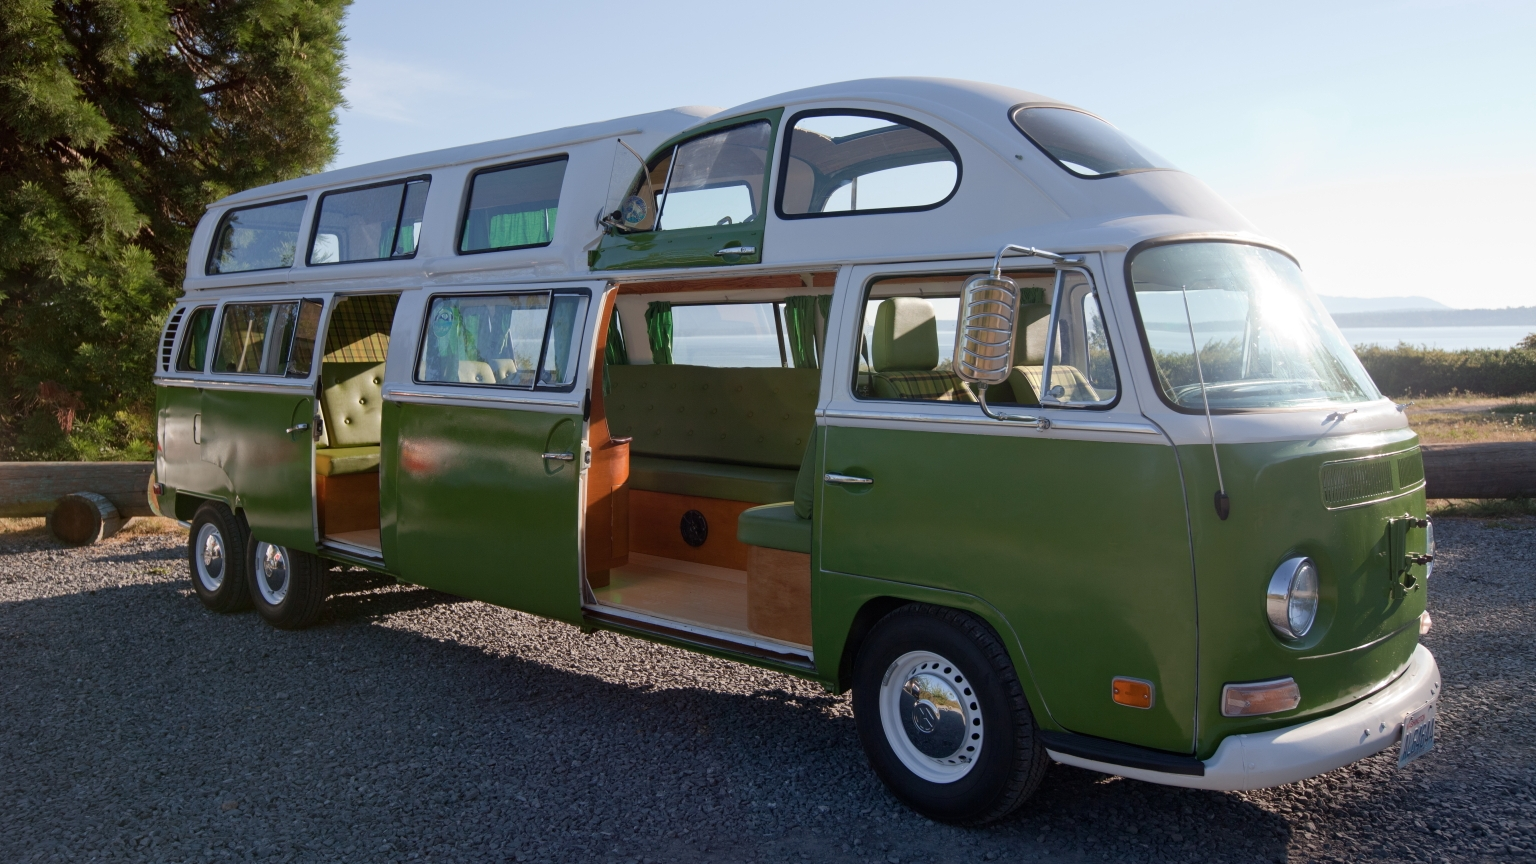 ... VW campers and a VW beetle. Seating up to to 12 passengers the limo is Vw Beetle 2014 Interior